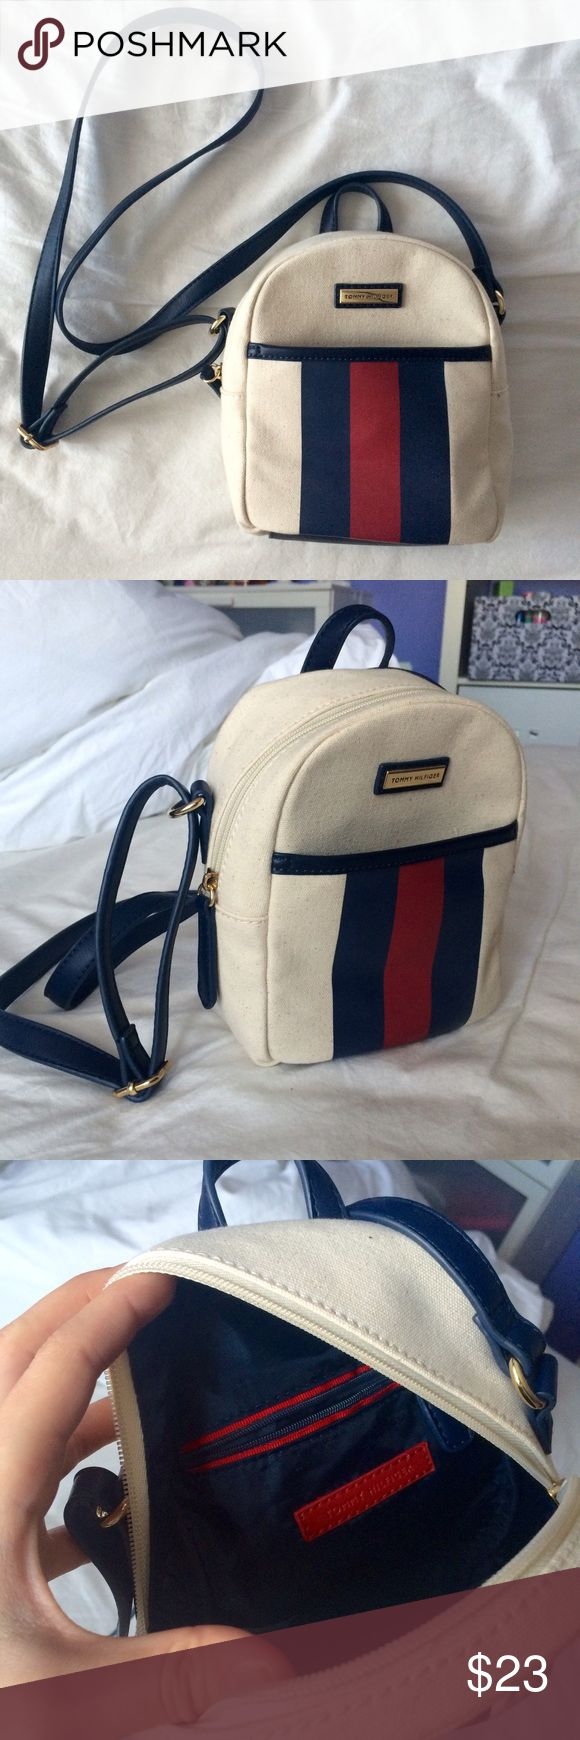 Tommy Hilfiger mini backpack inspired crossbody Cream colored. Mini backpack design. Crossbody. Super cute & never worn. Interior pocket. Classic Tommy navy & red stripe on front. Tommy Hilfiger Bags Crossbody Bags